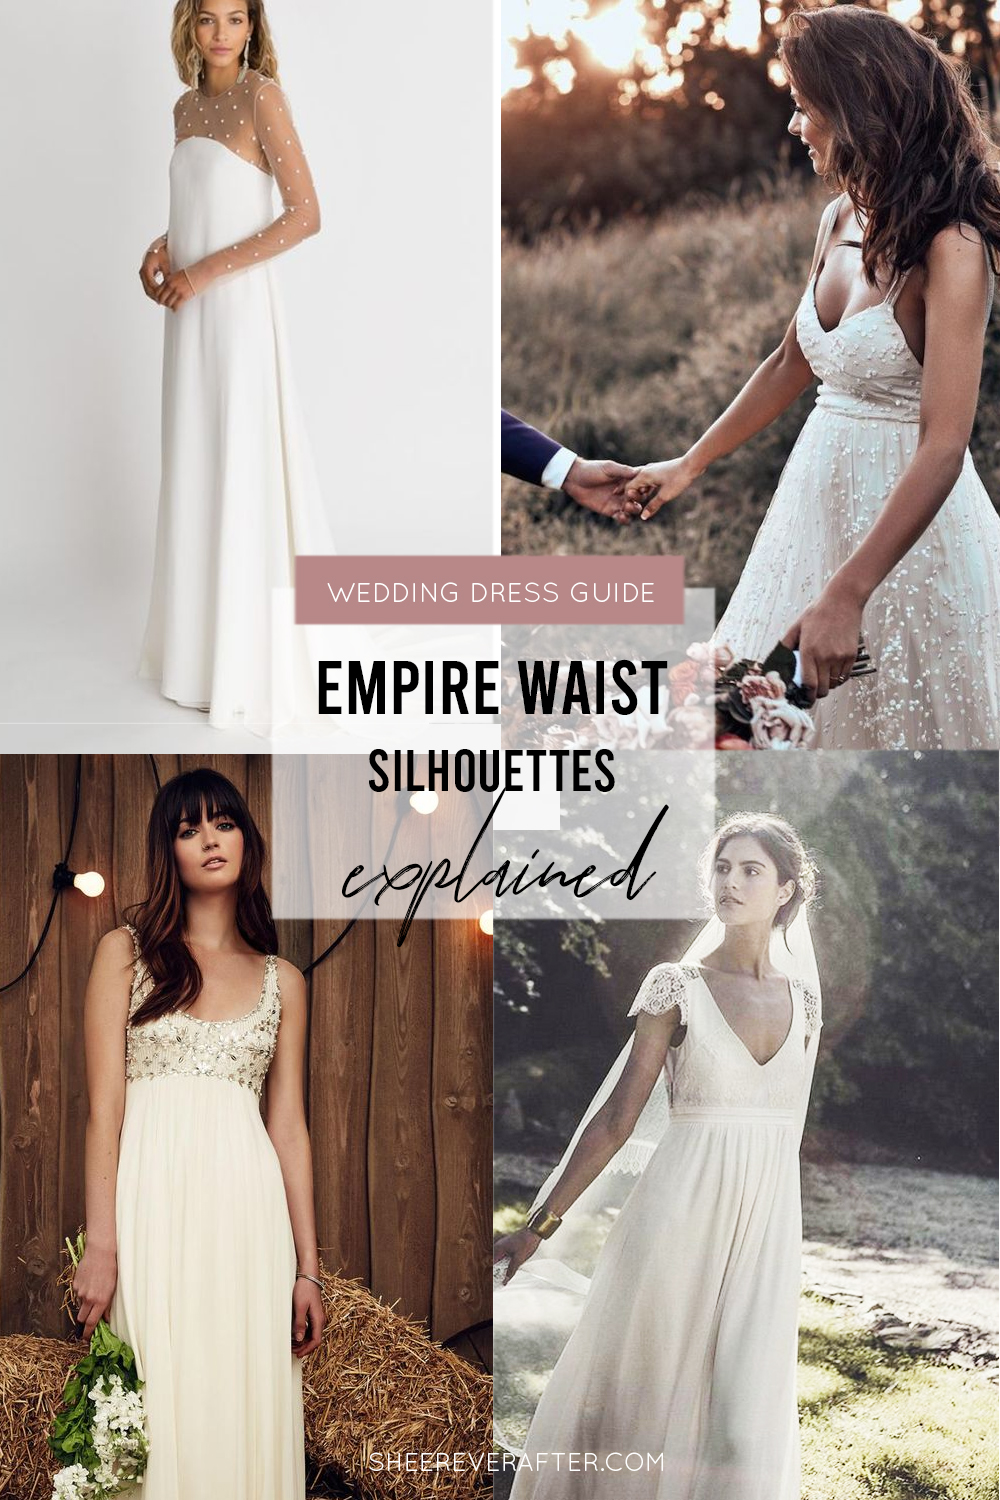 #weddingdress #weddingdresssilhouettes #bridalgown #bridal #weddingday #weddingideas #beautifuldress #empire #empiregown